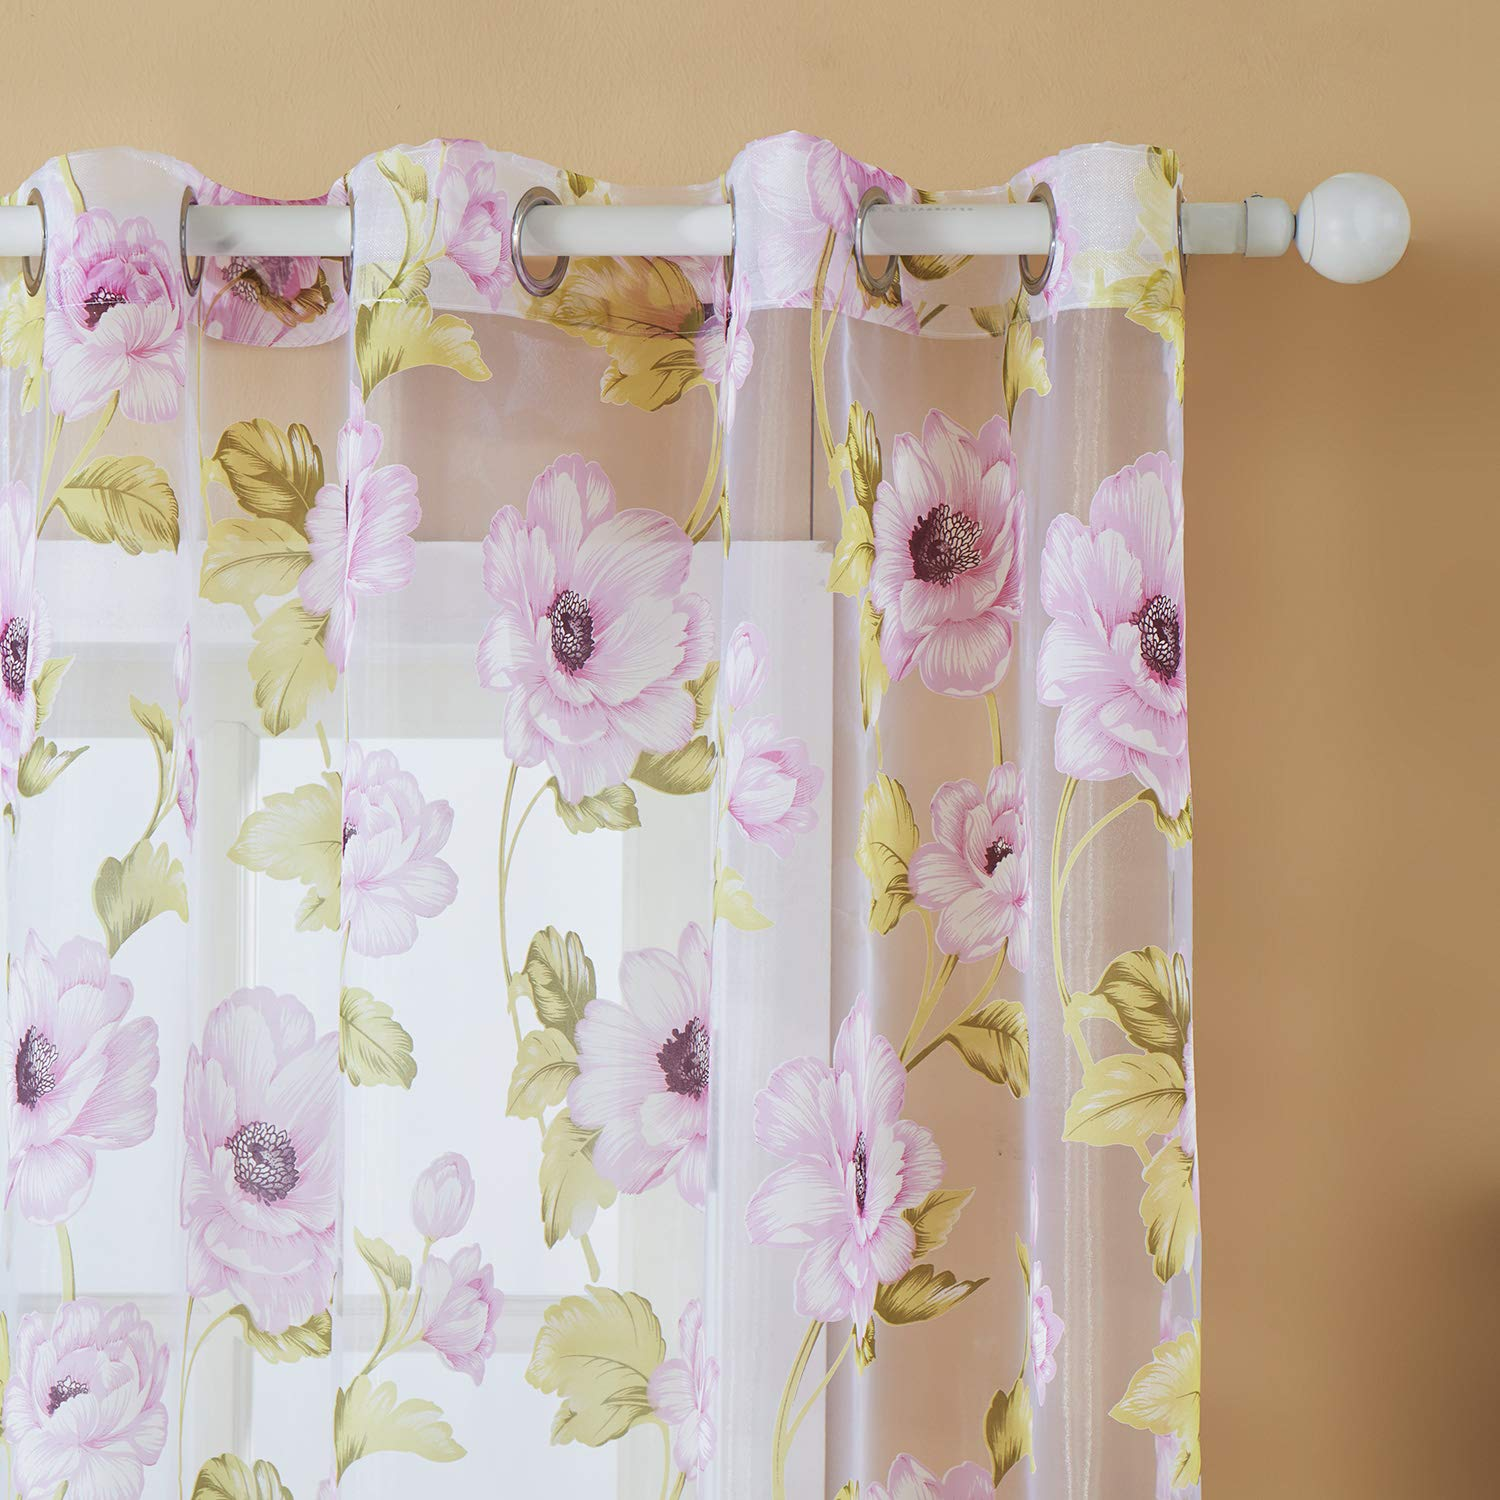 Top Finel Blooming Peony Voile Window Curtain Voile Net Panels For Living Room 54-inch Width X 84-inch Length,Grommets,Single panel,Brown